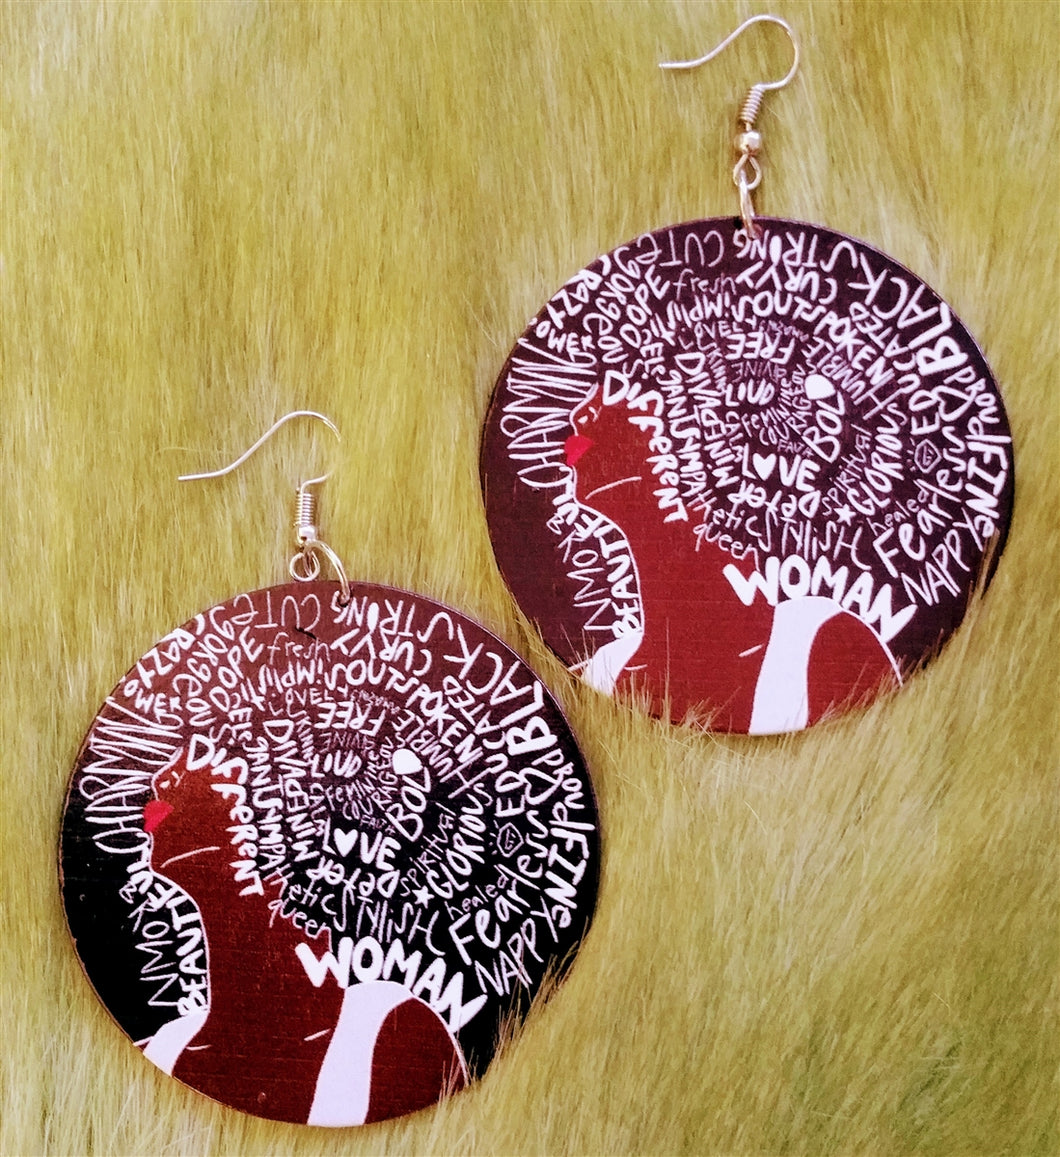 Descriptive Afro Woman Earrings